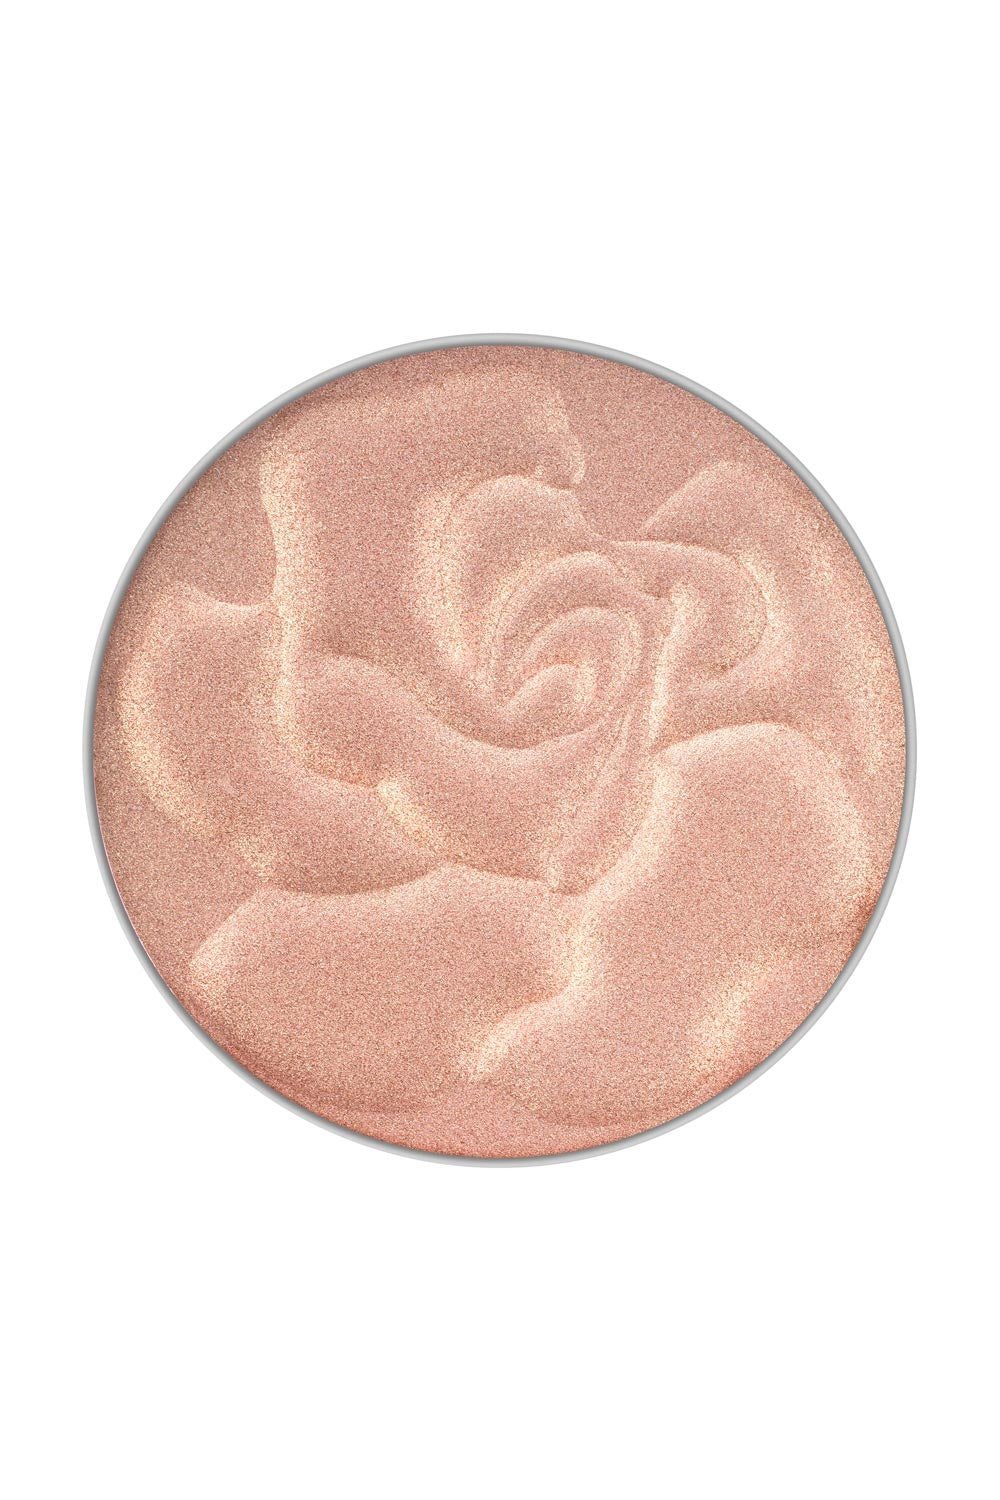 Type 2 Bronzer Pan - Adorned